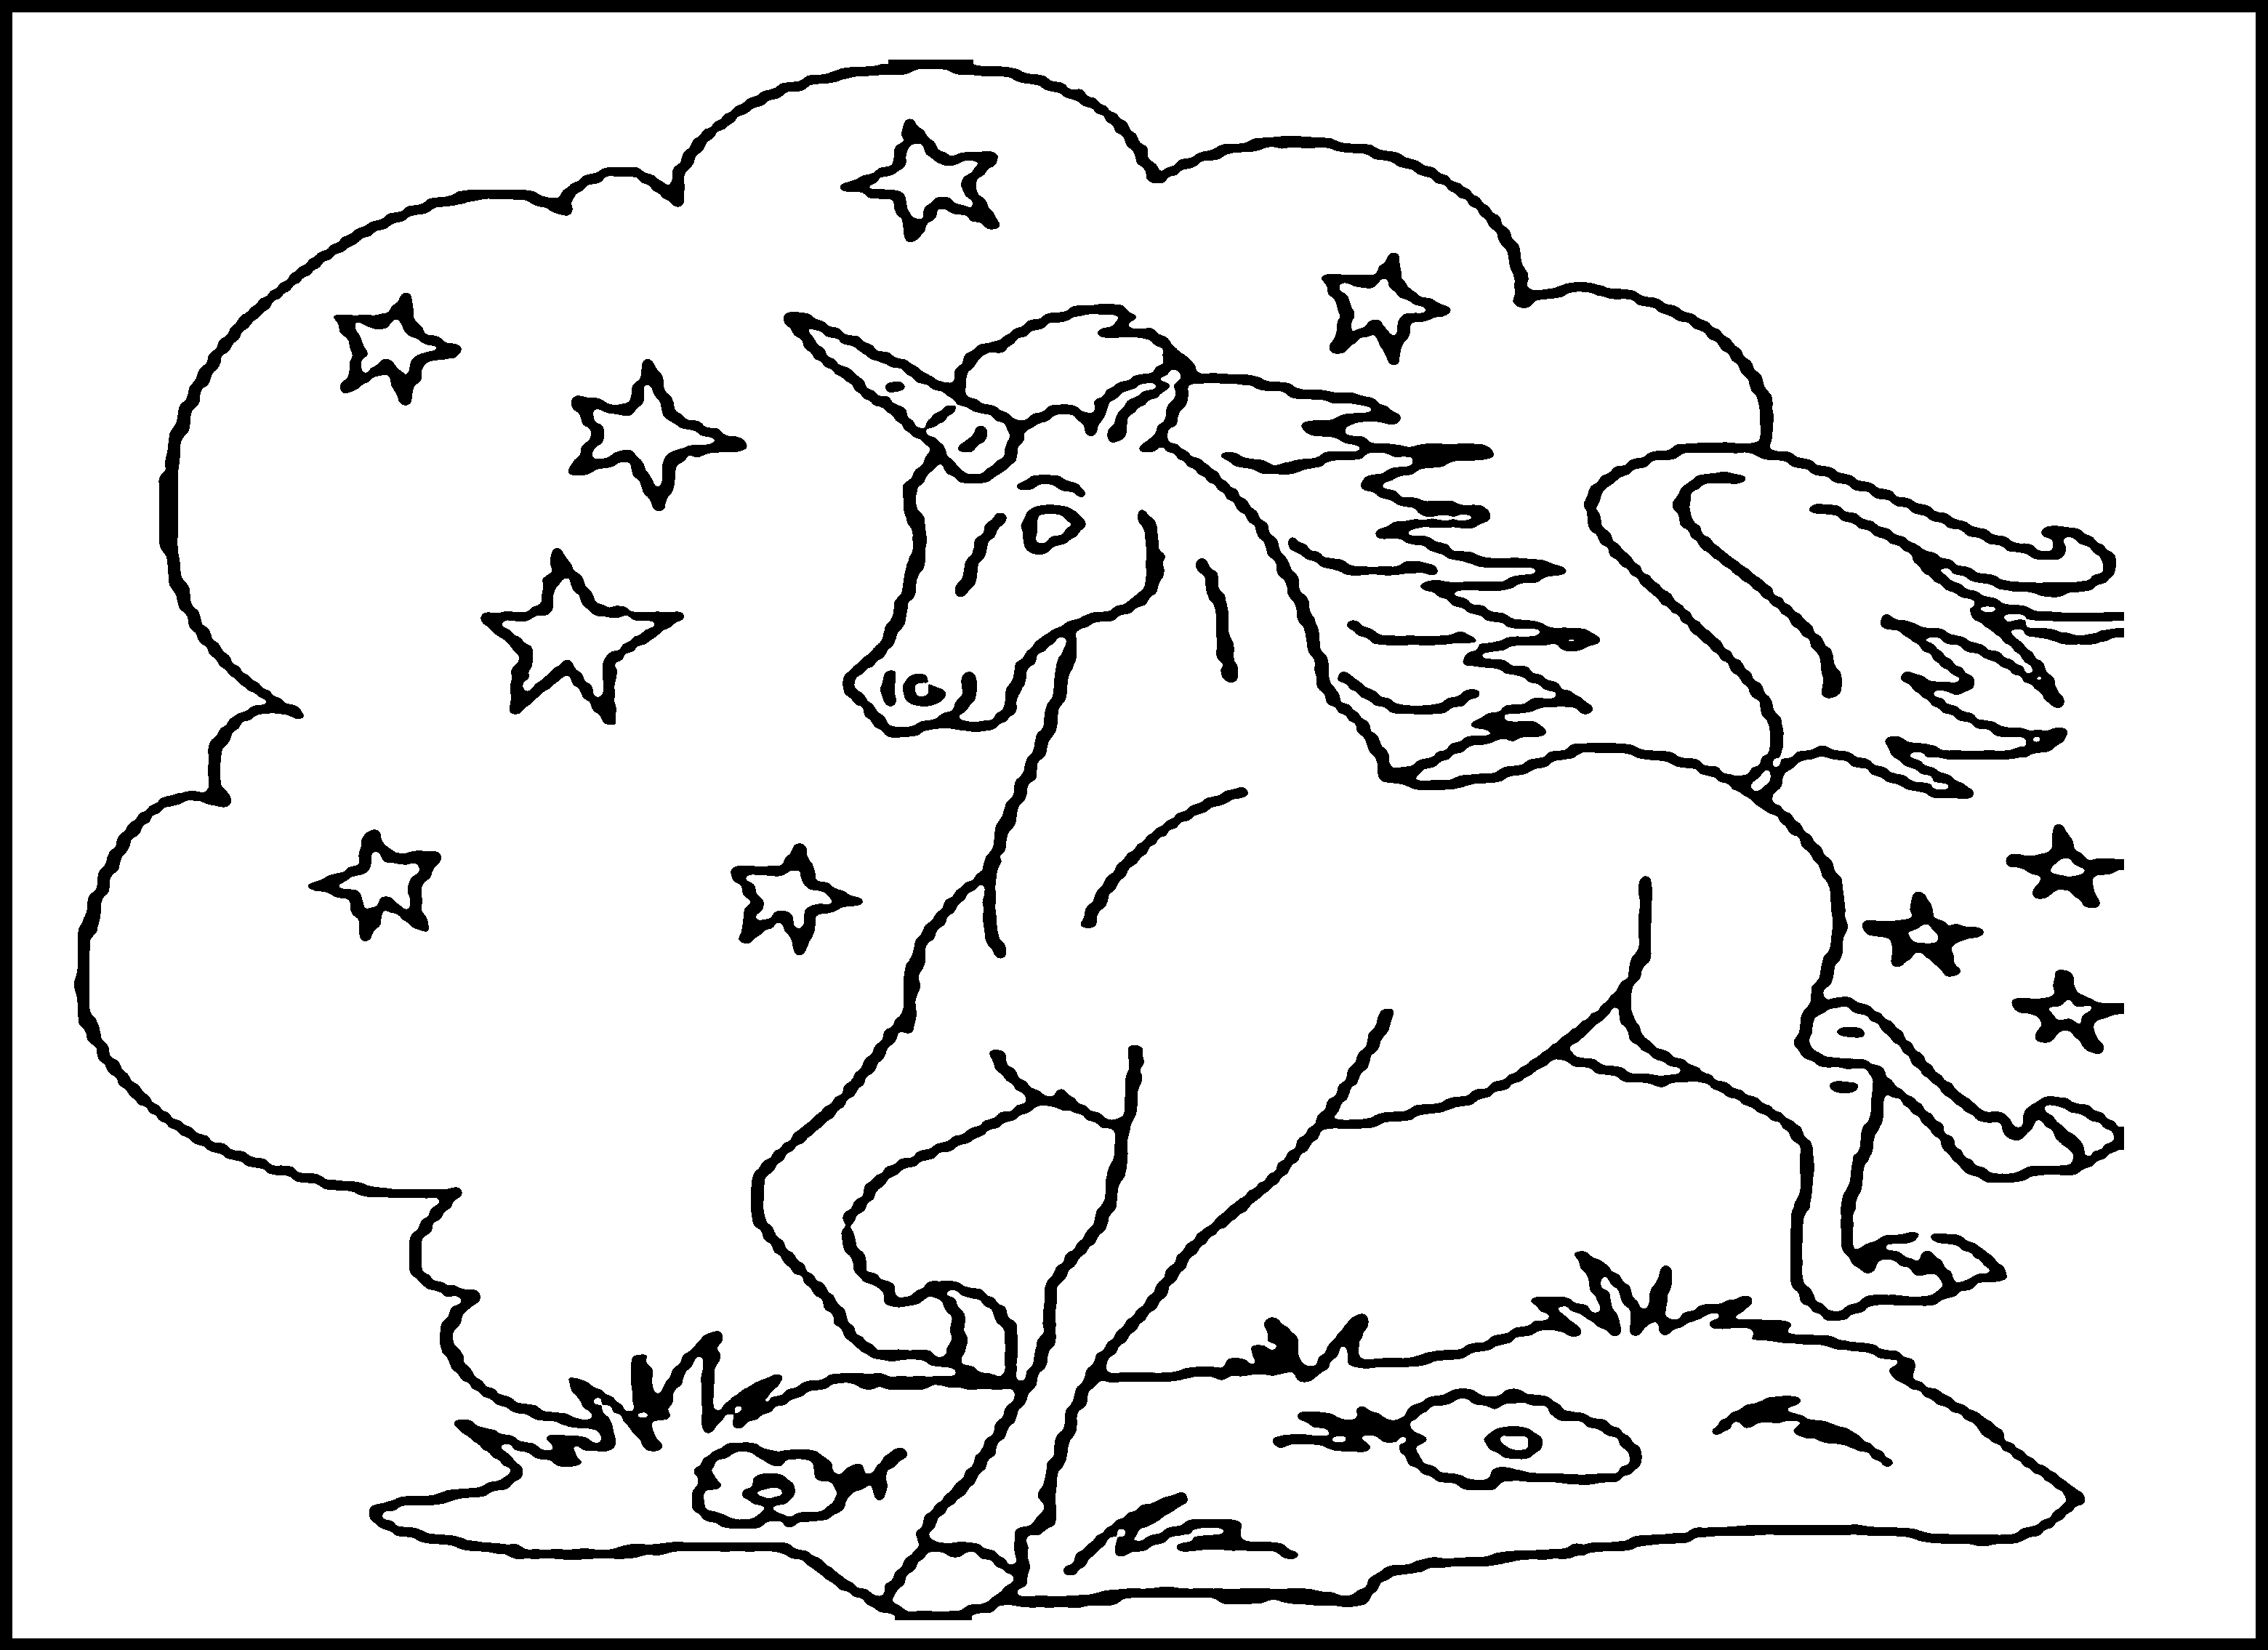 3120x2270 Competitive Coloring Pages To Print Out That You Can Printable